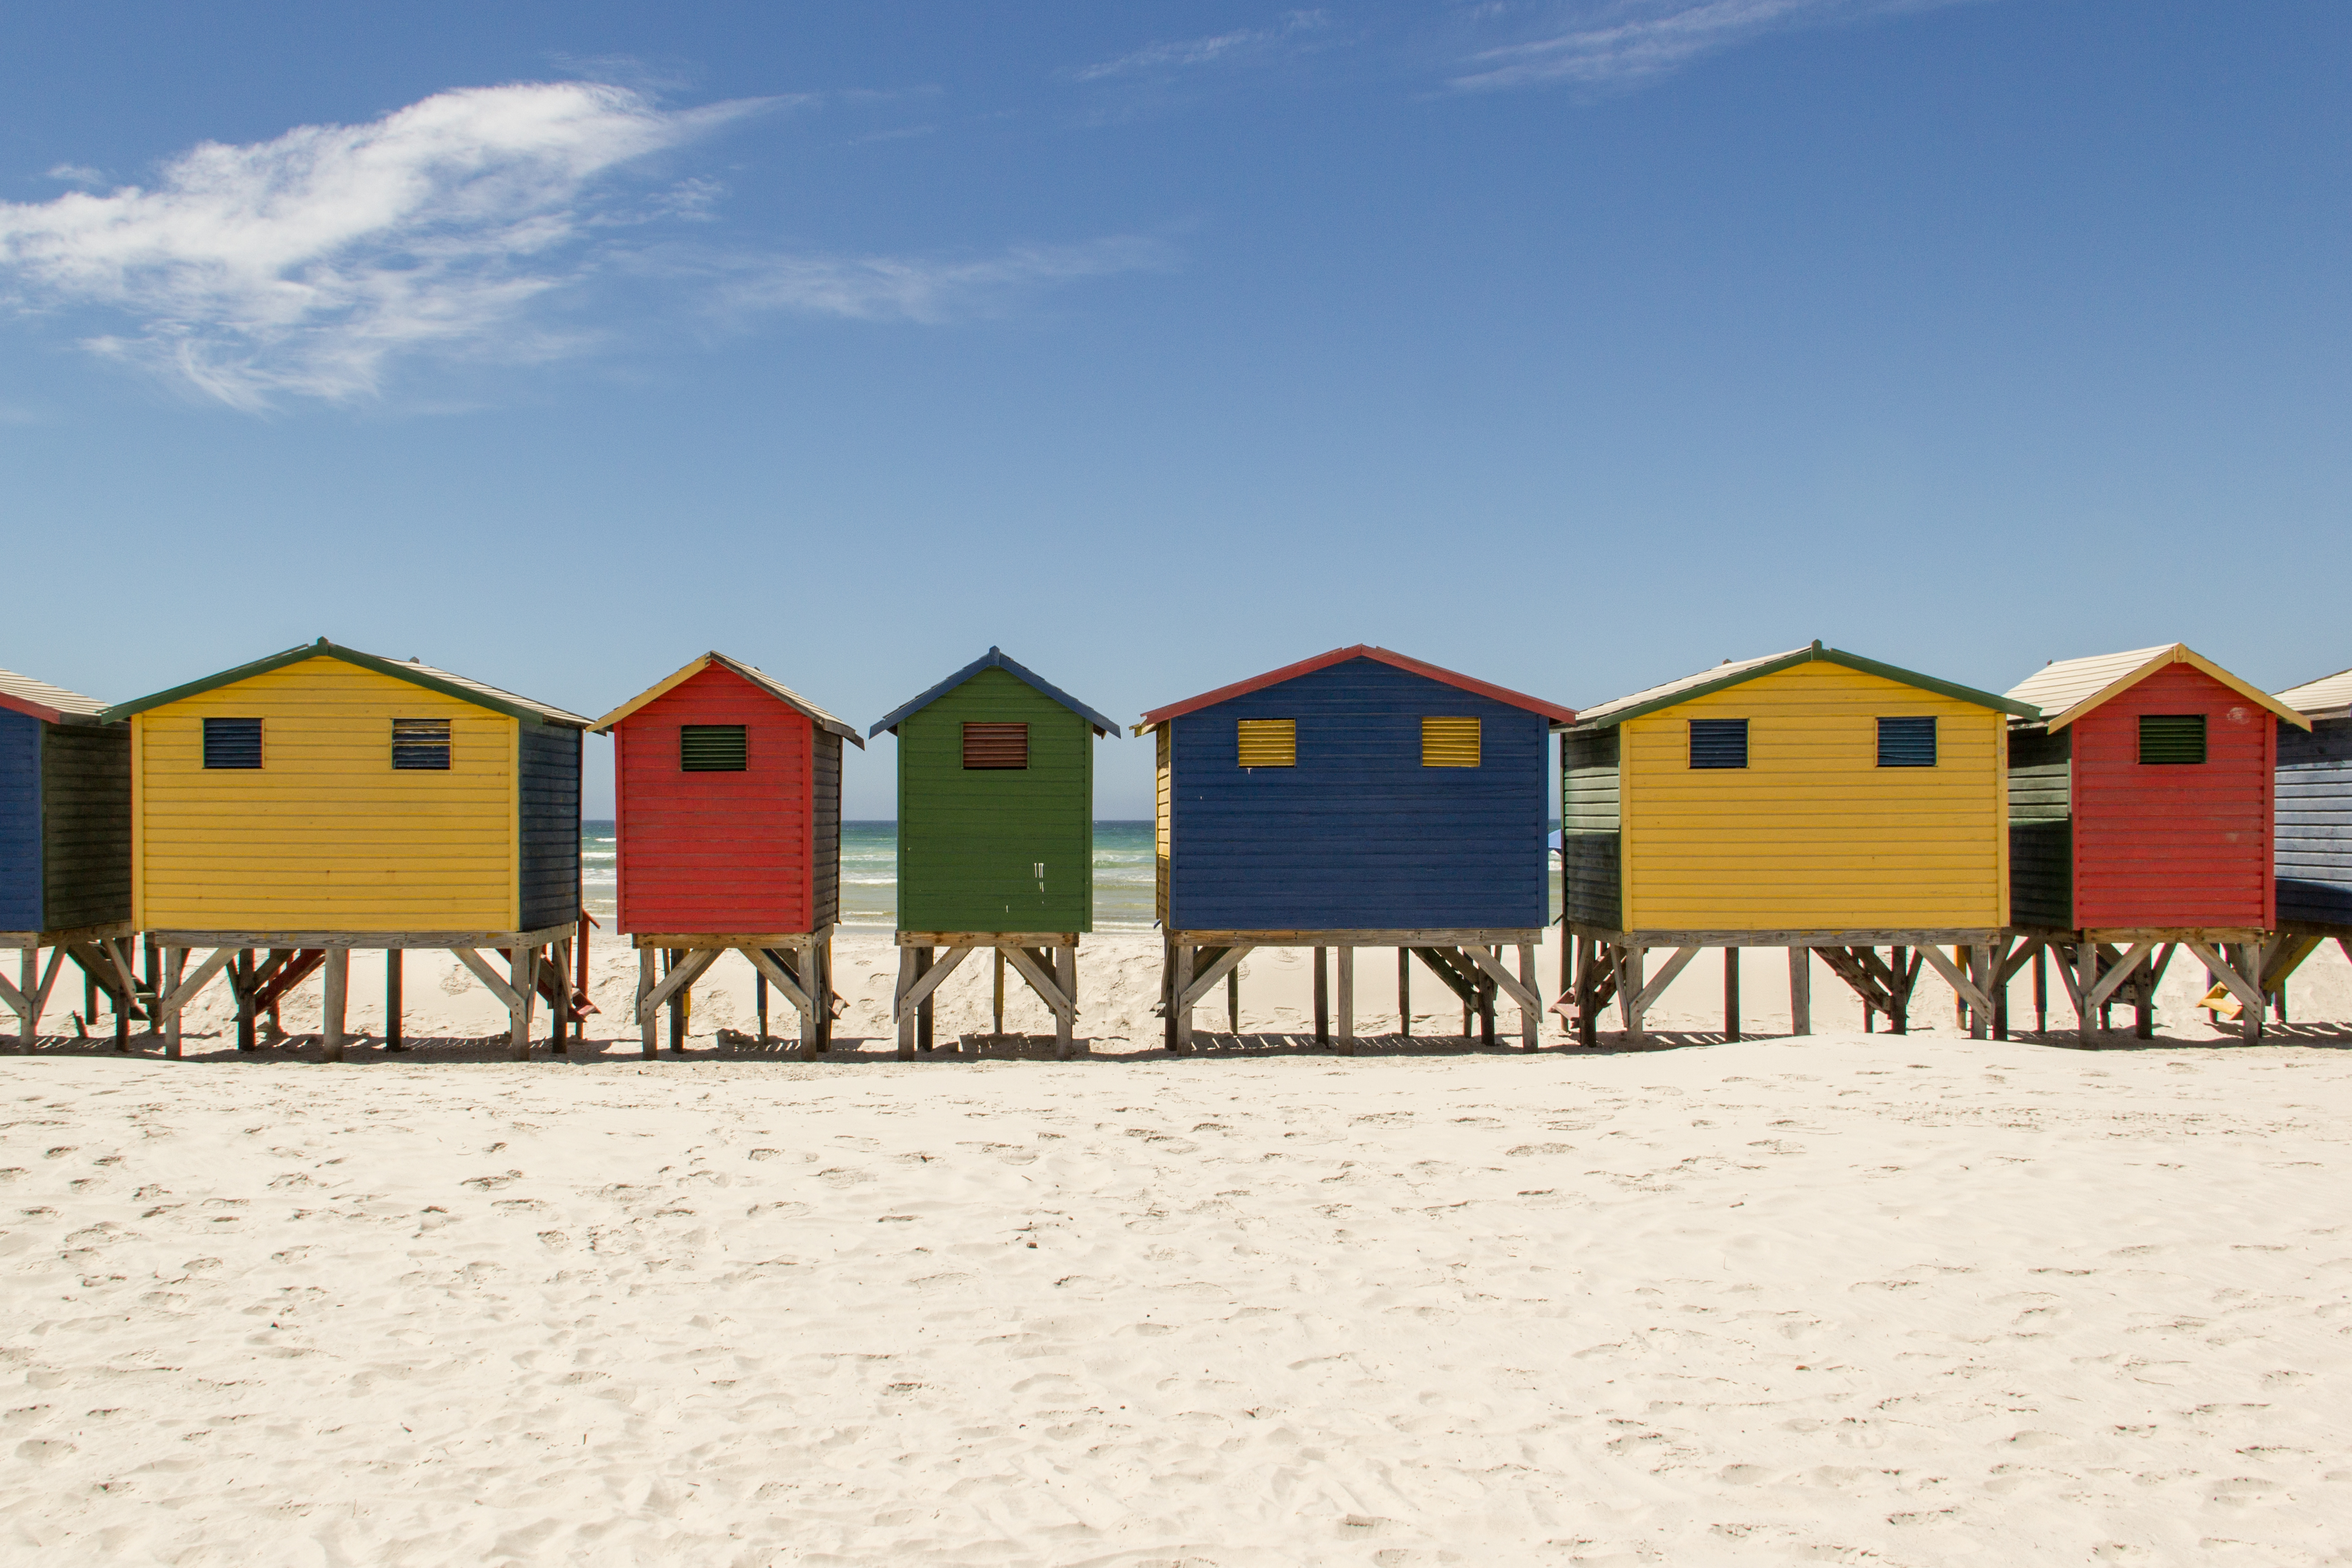 Pictures of houses on the beach - File Beachhousesmuizenbergbeach Jpg